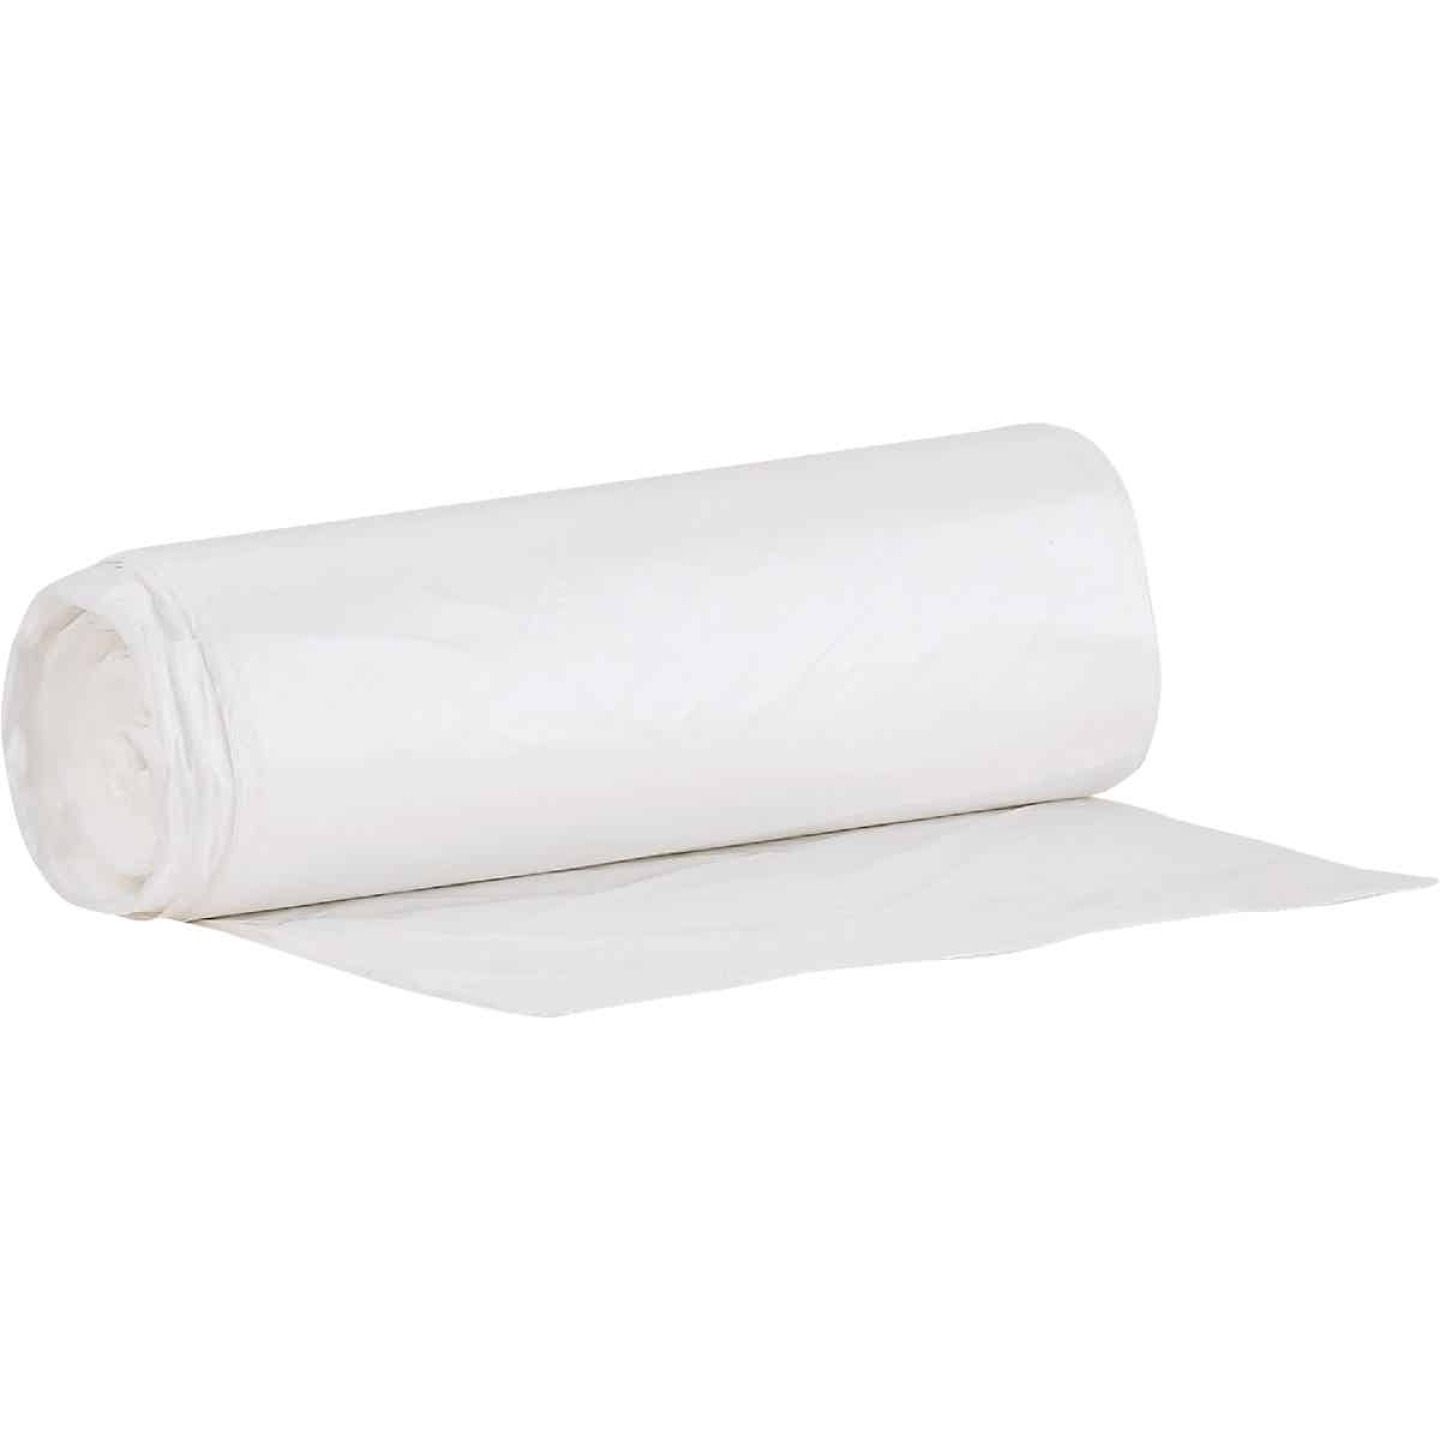 Performance Plus 33 Gal. Natural High Density Can Liner (250-Count) Image 1